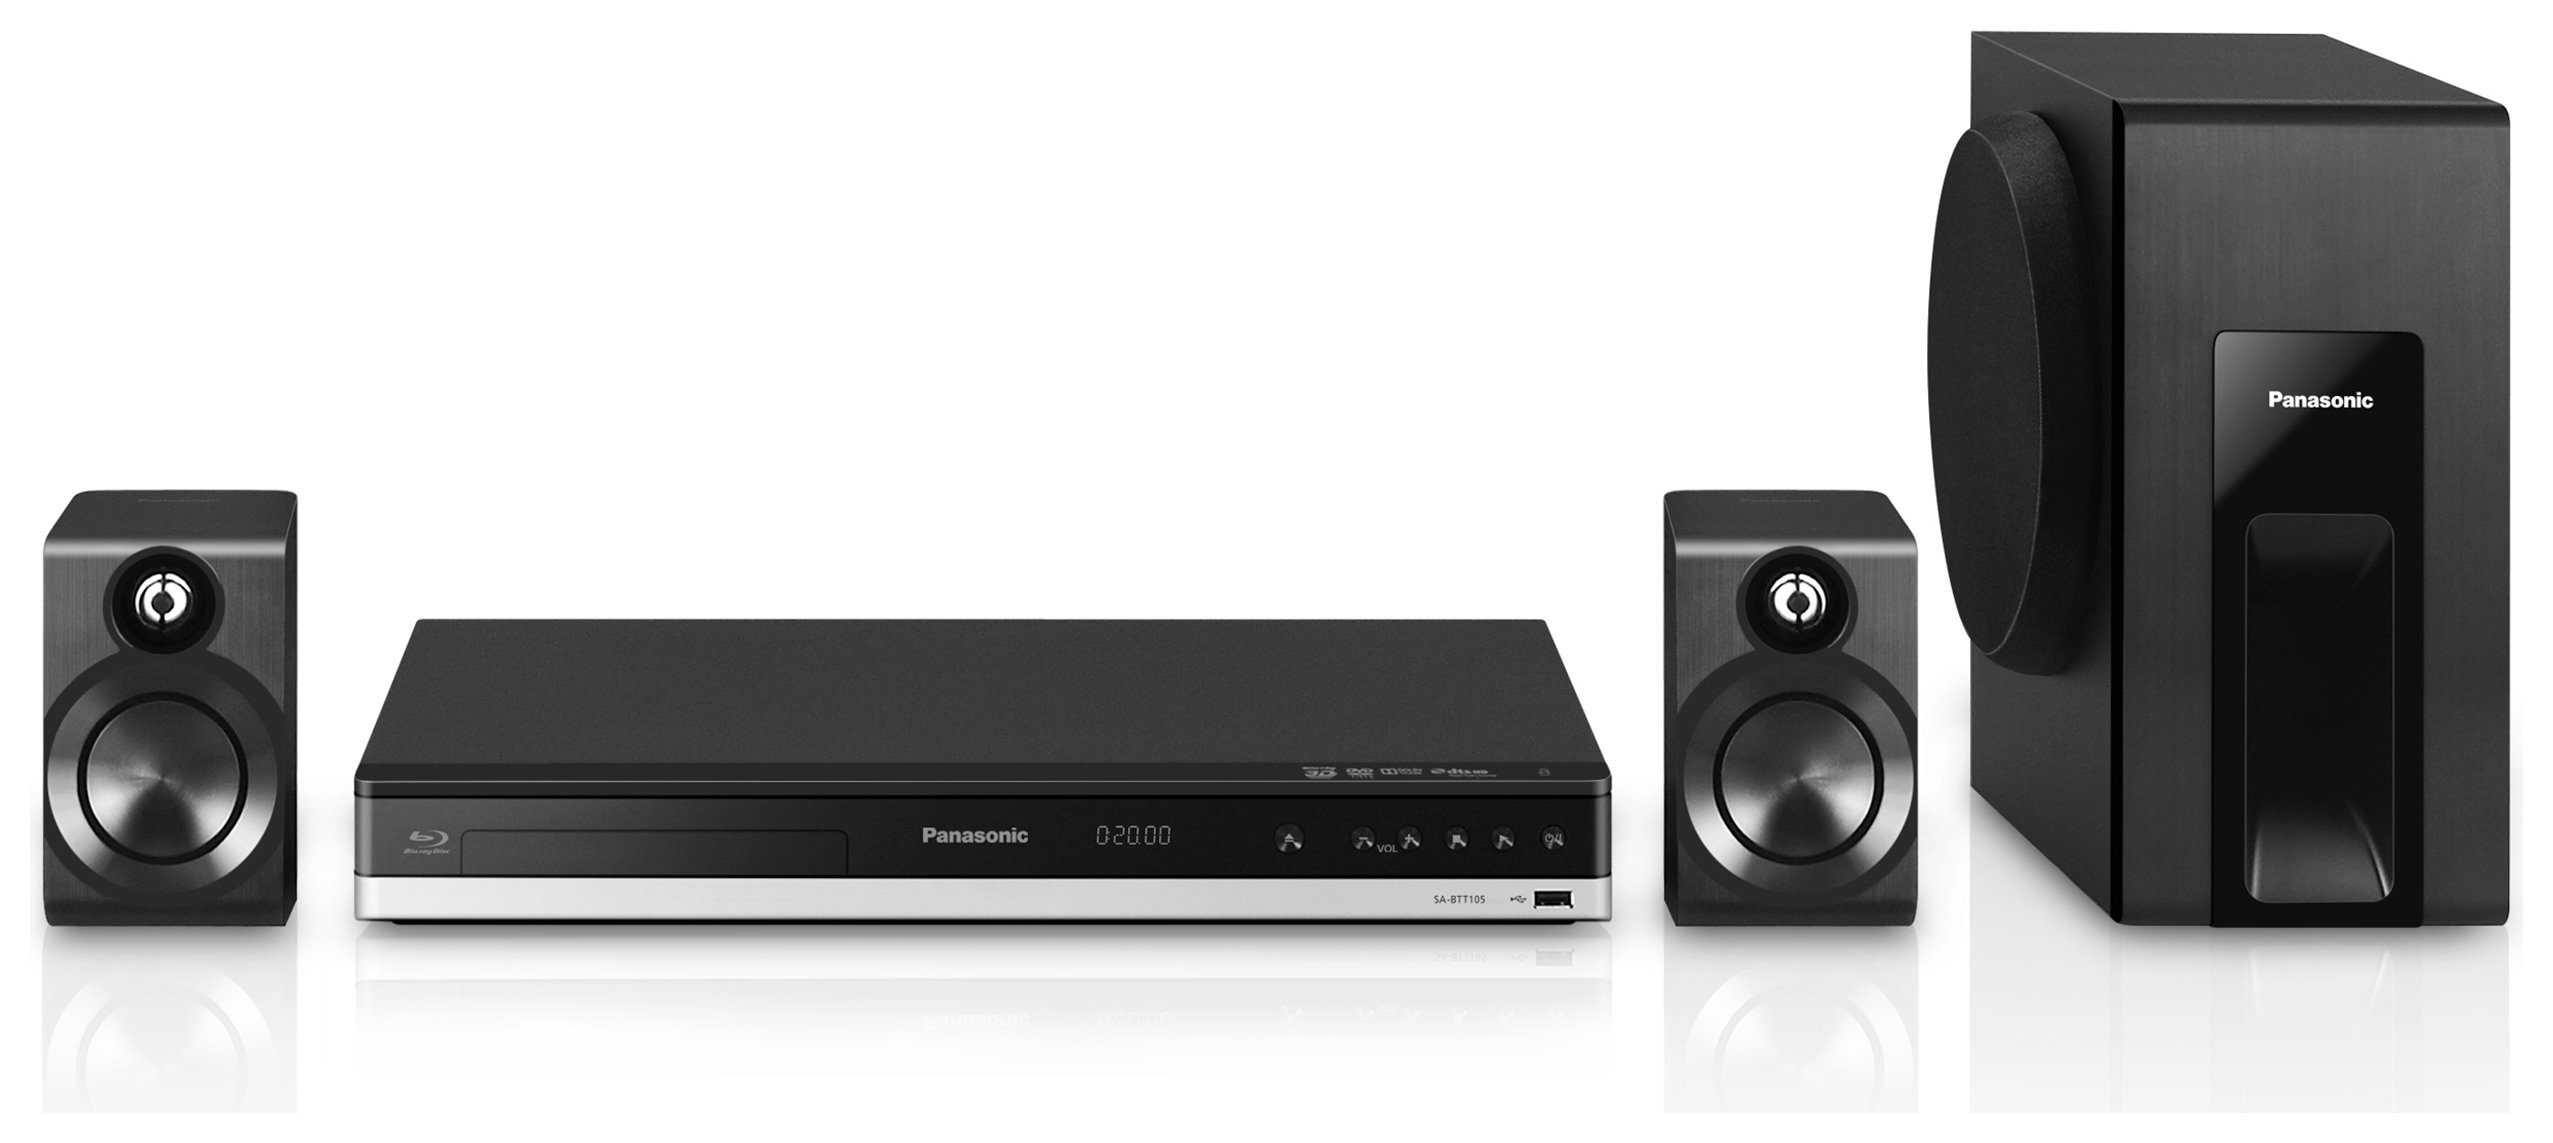 Panasonic SCBTT105EB9 300W 2.1 Smart 4K Home Cinema System.